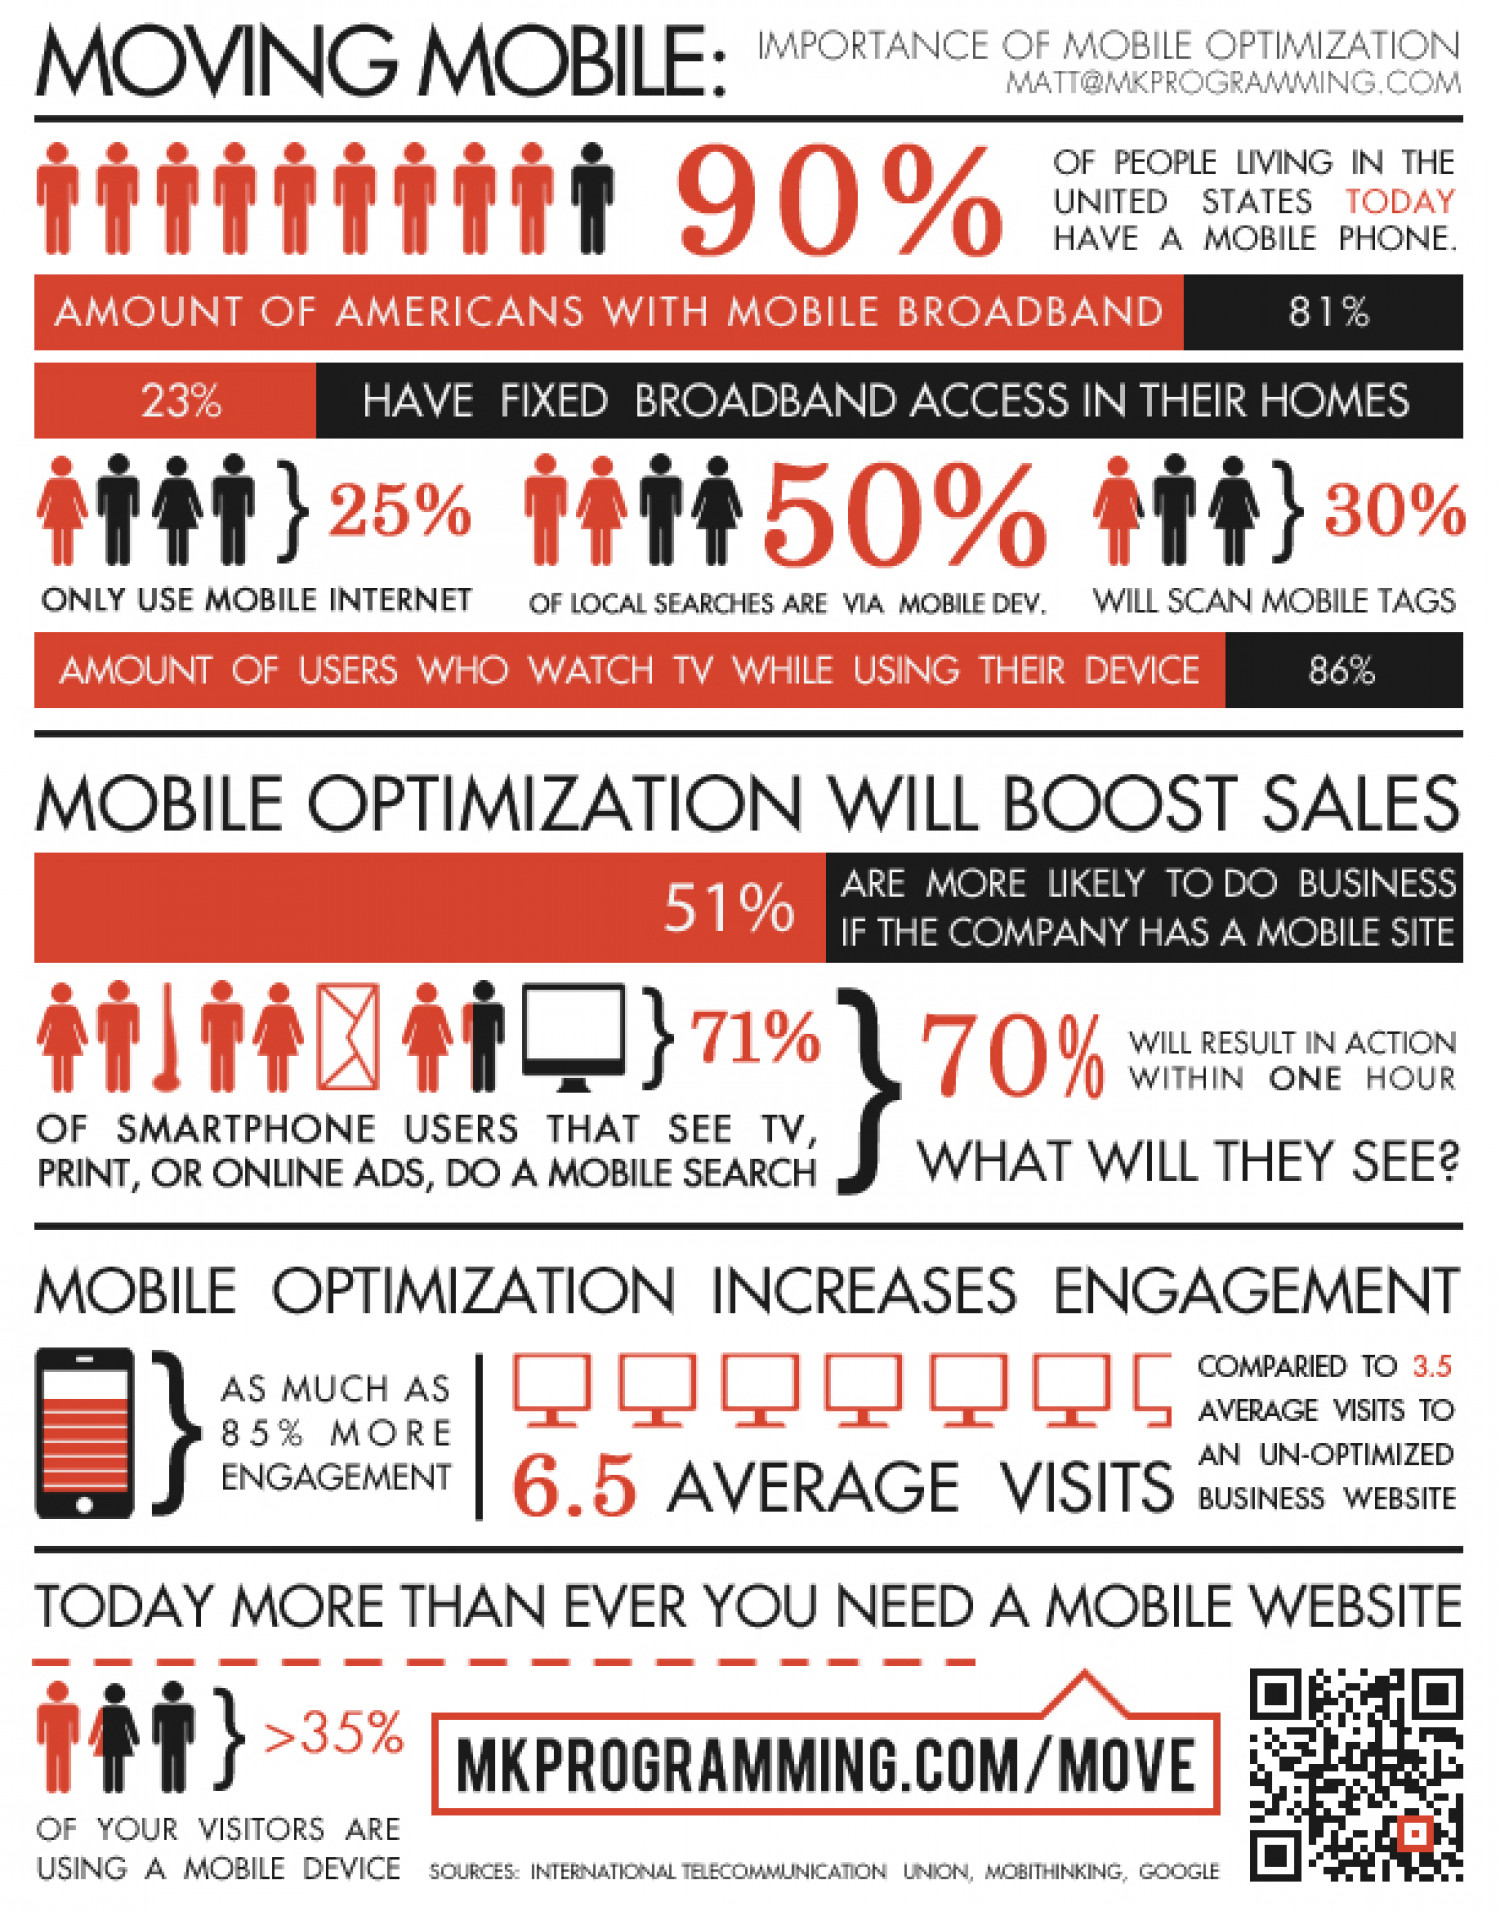 Importance of Mobile Optimization Infographic